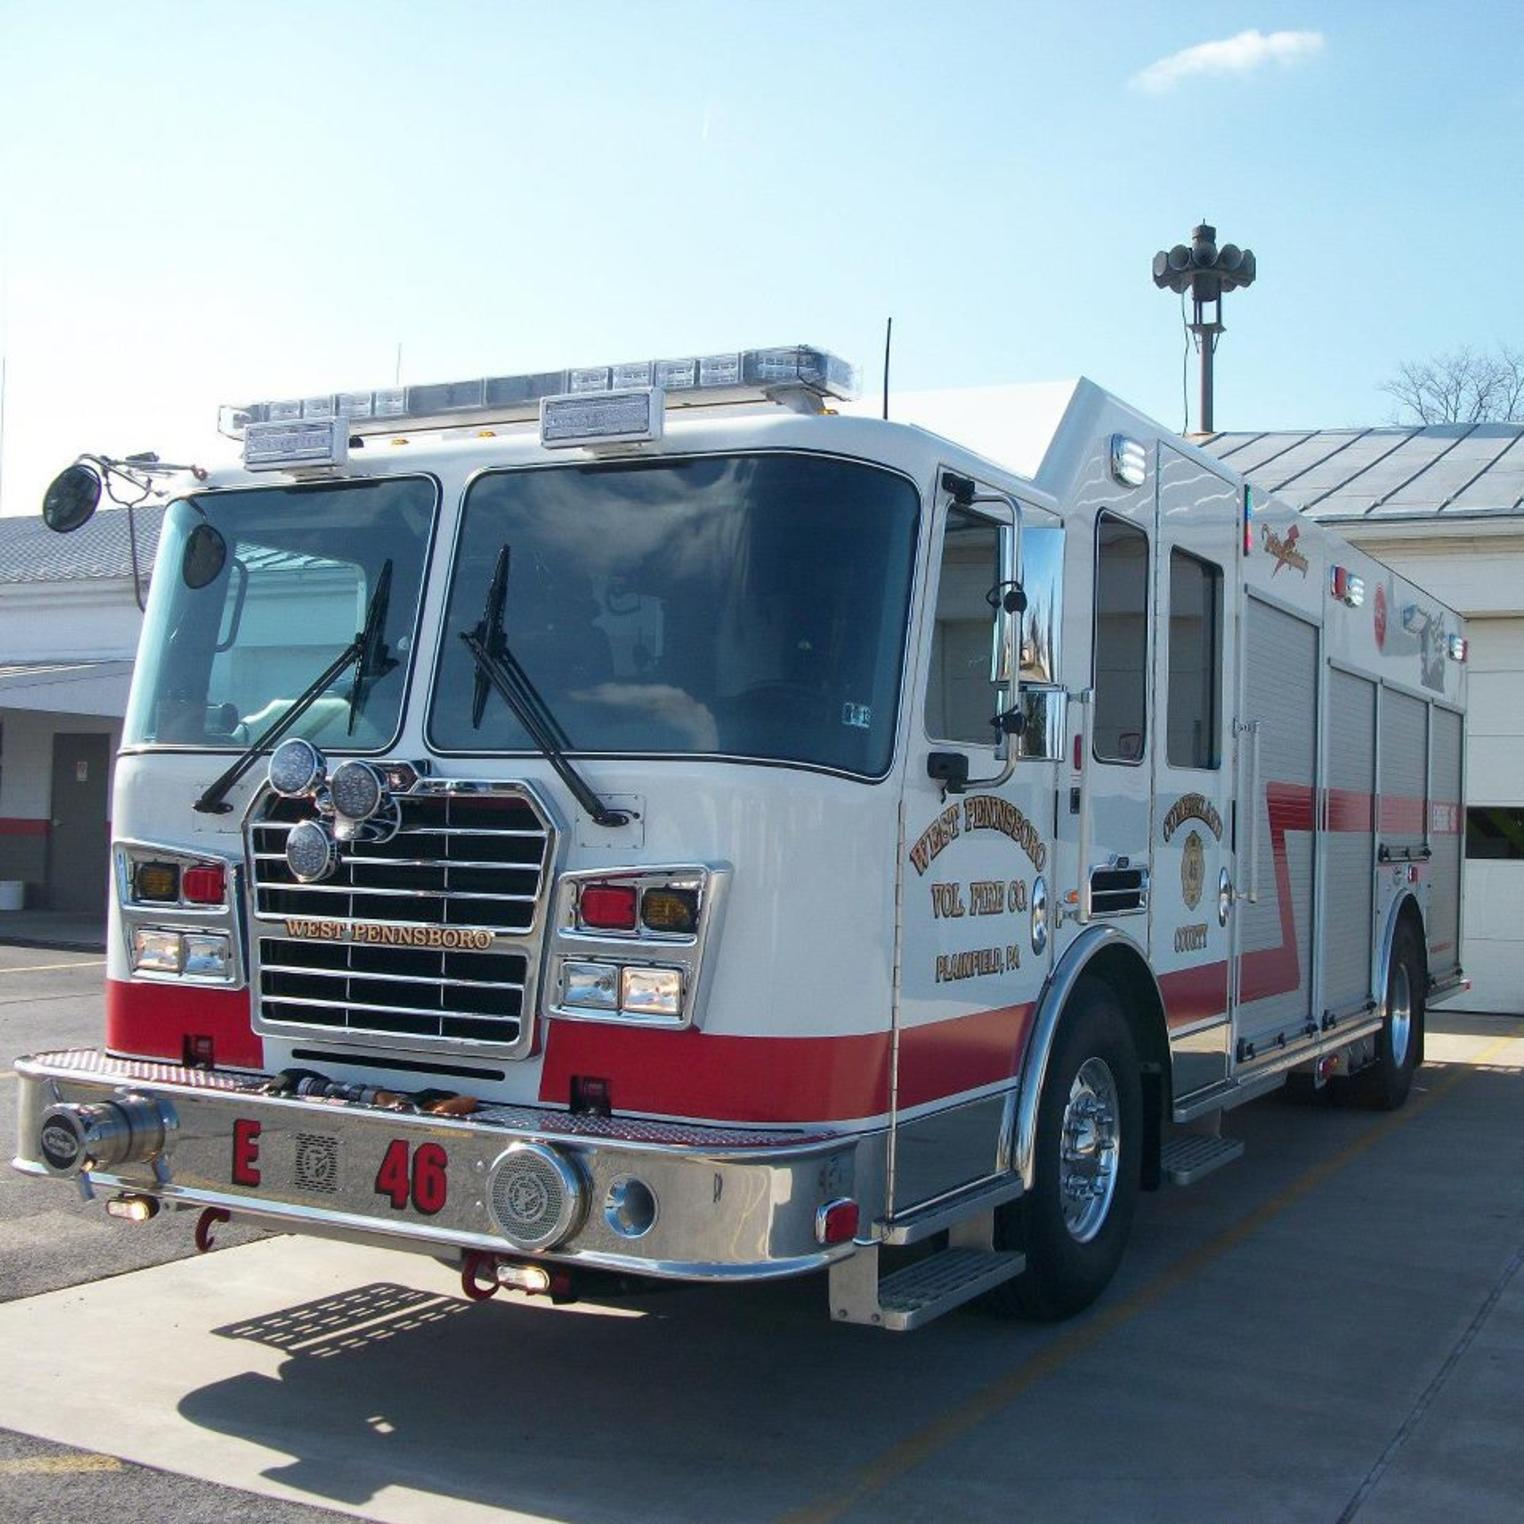 West Pennsboro Fire Department